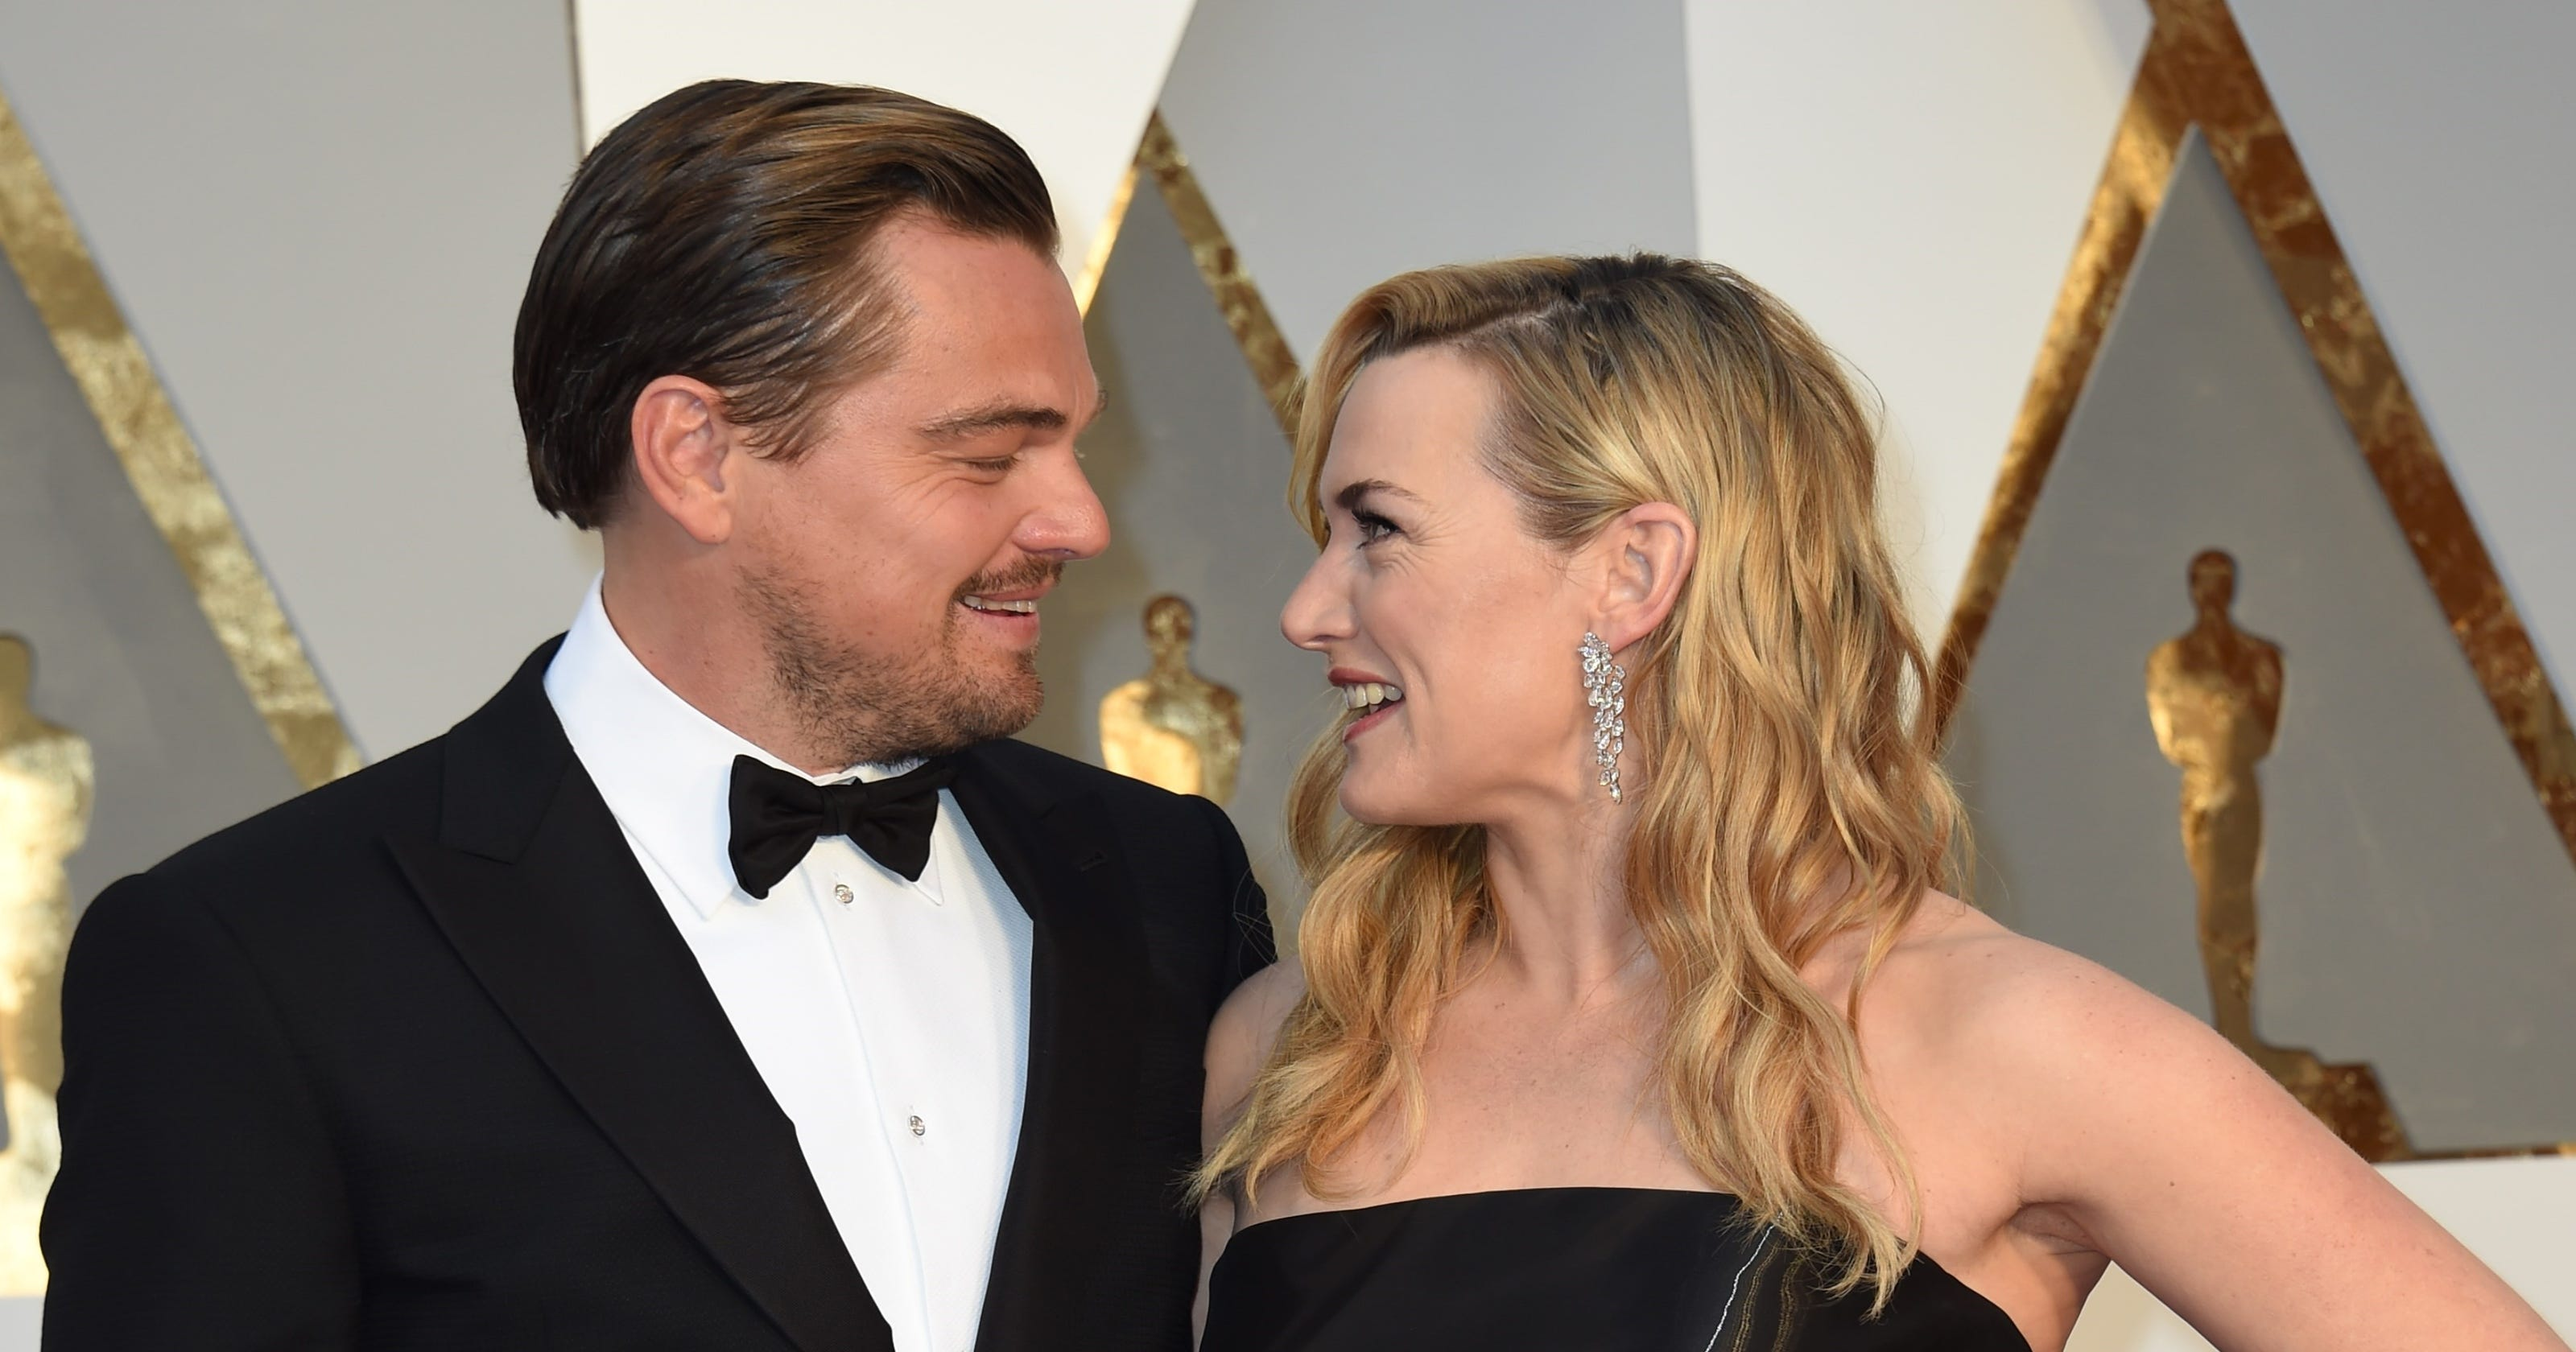 You Can Win A Titanic Dinner With Leonardo Dicaprio And Kate Winslet